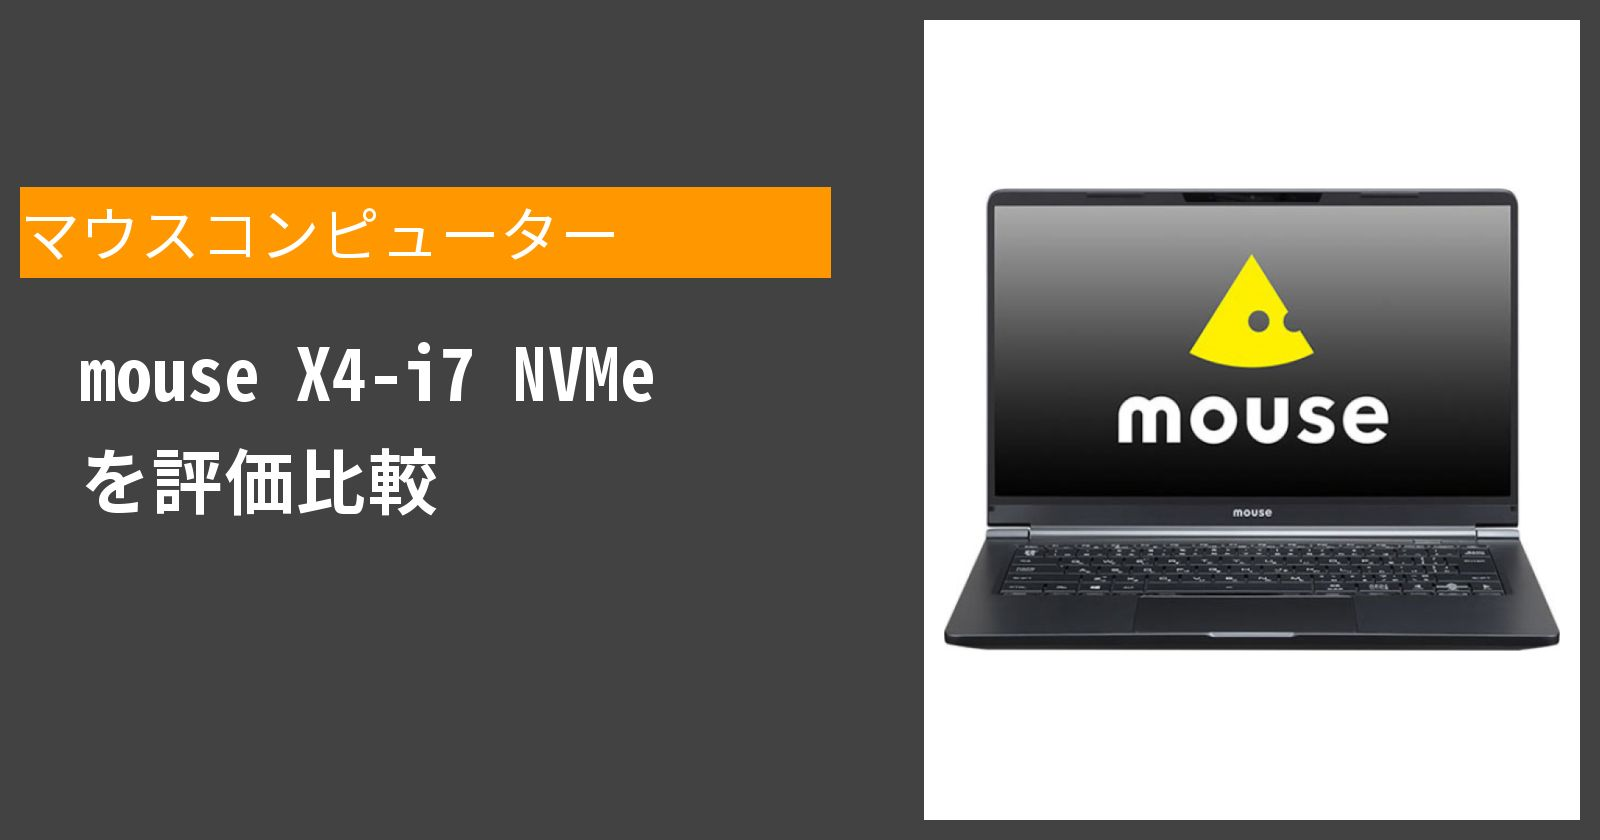 mouse X4-i7 NVMeを徹底評価